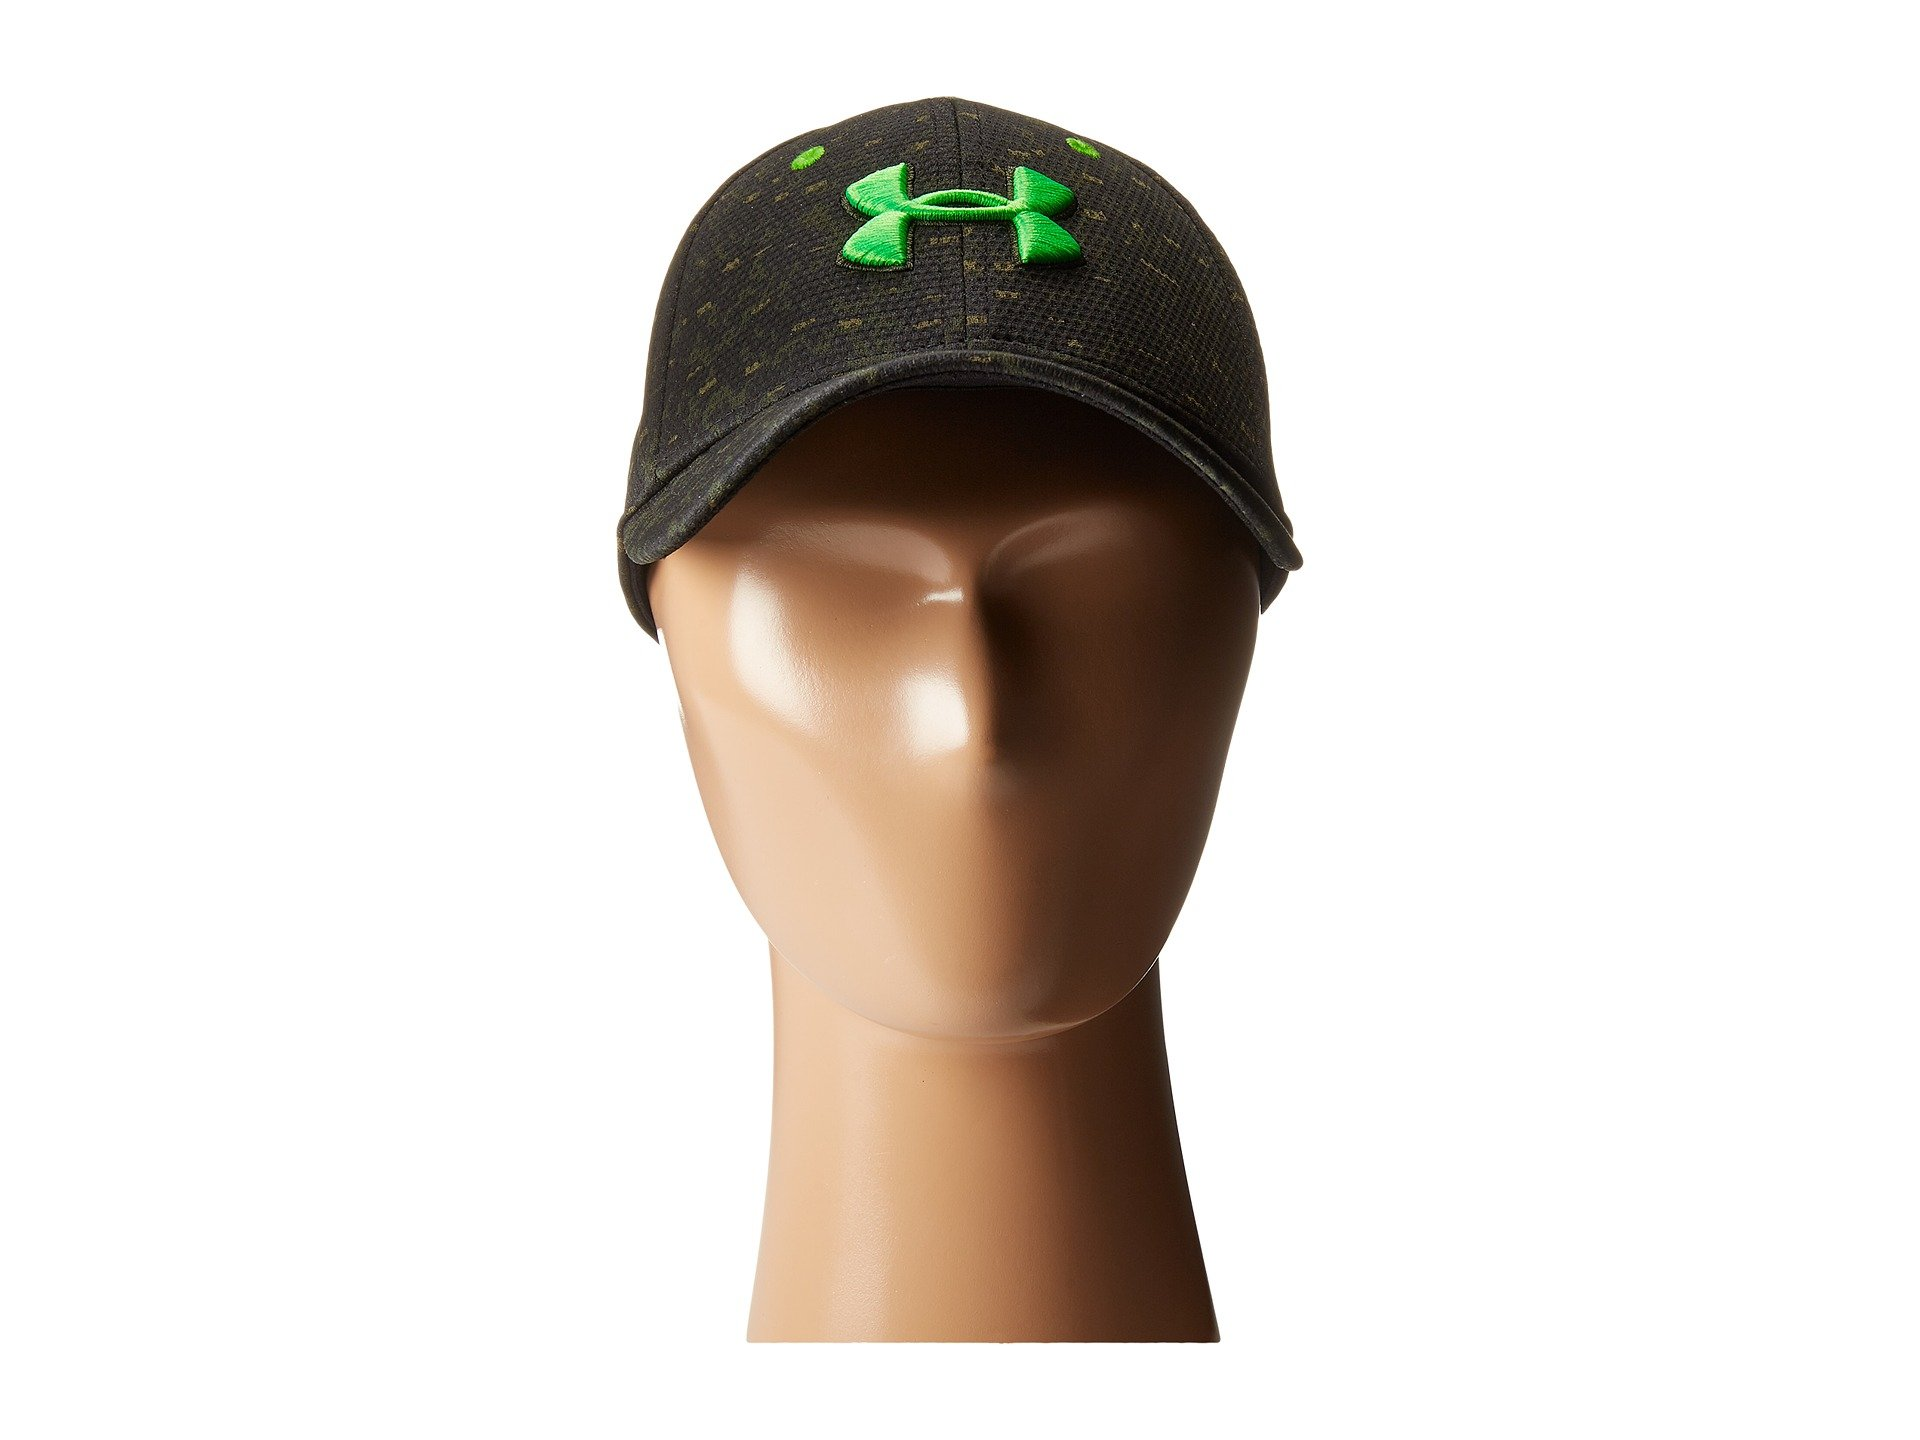 586ad92efb3 ... low cost lyst under armour ua printed blitzing cap youth in green for  men 28e27 21c4e